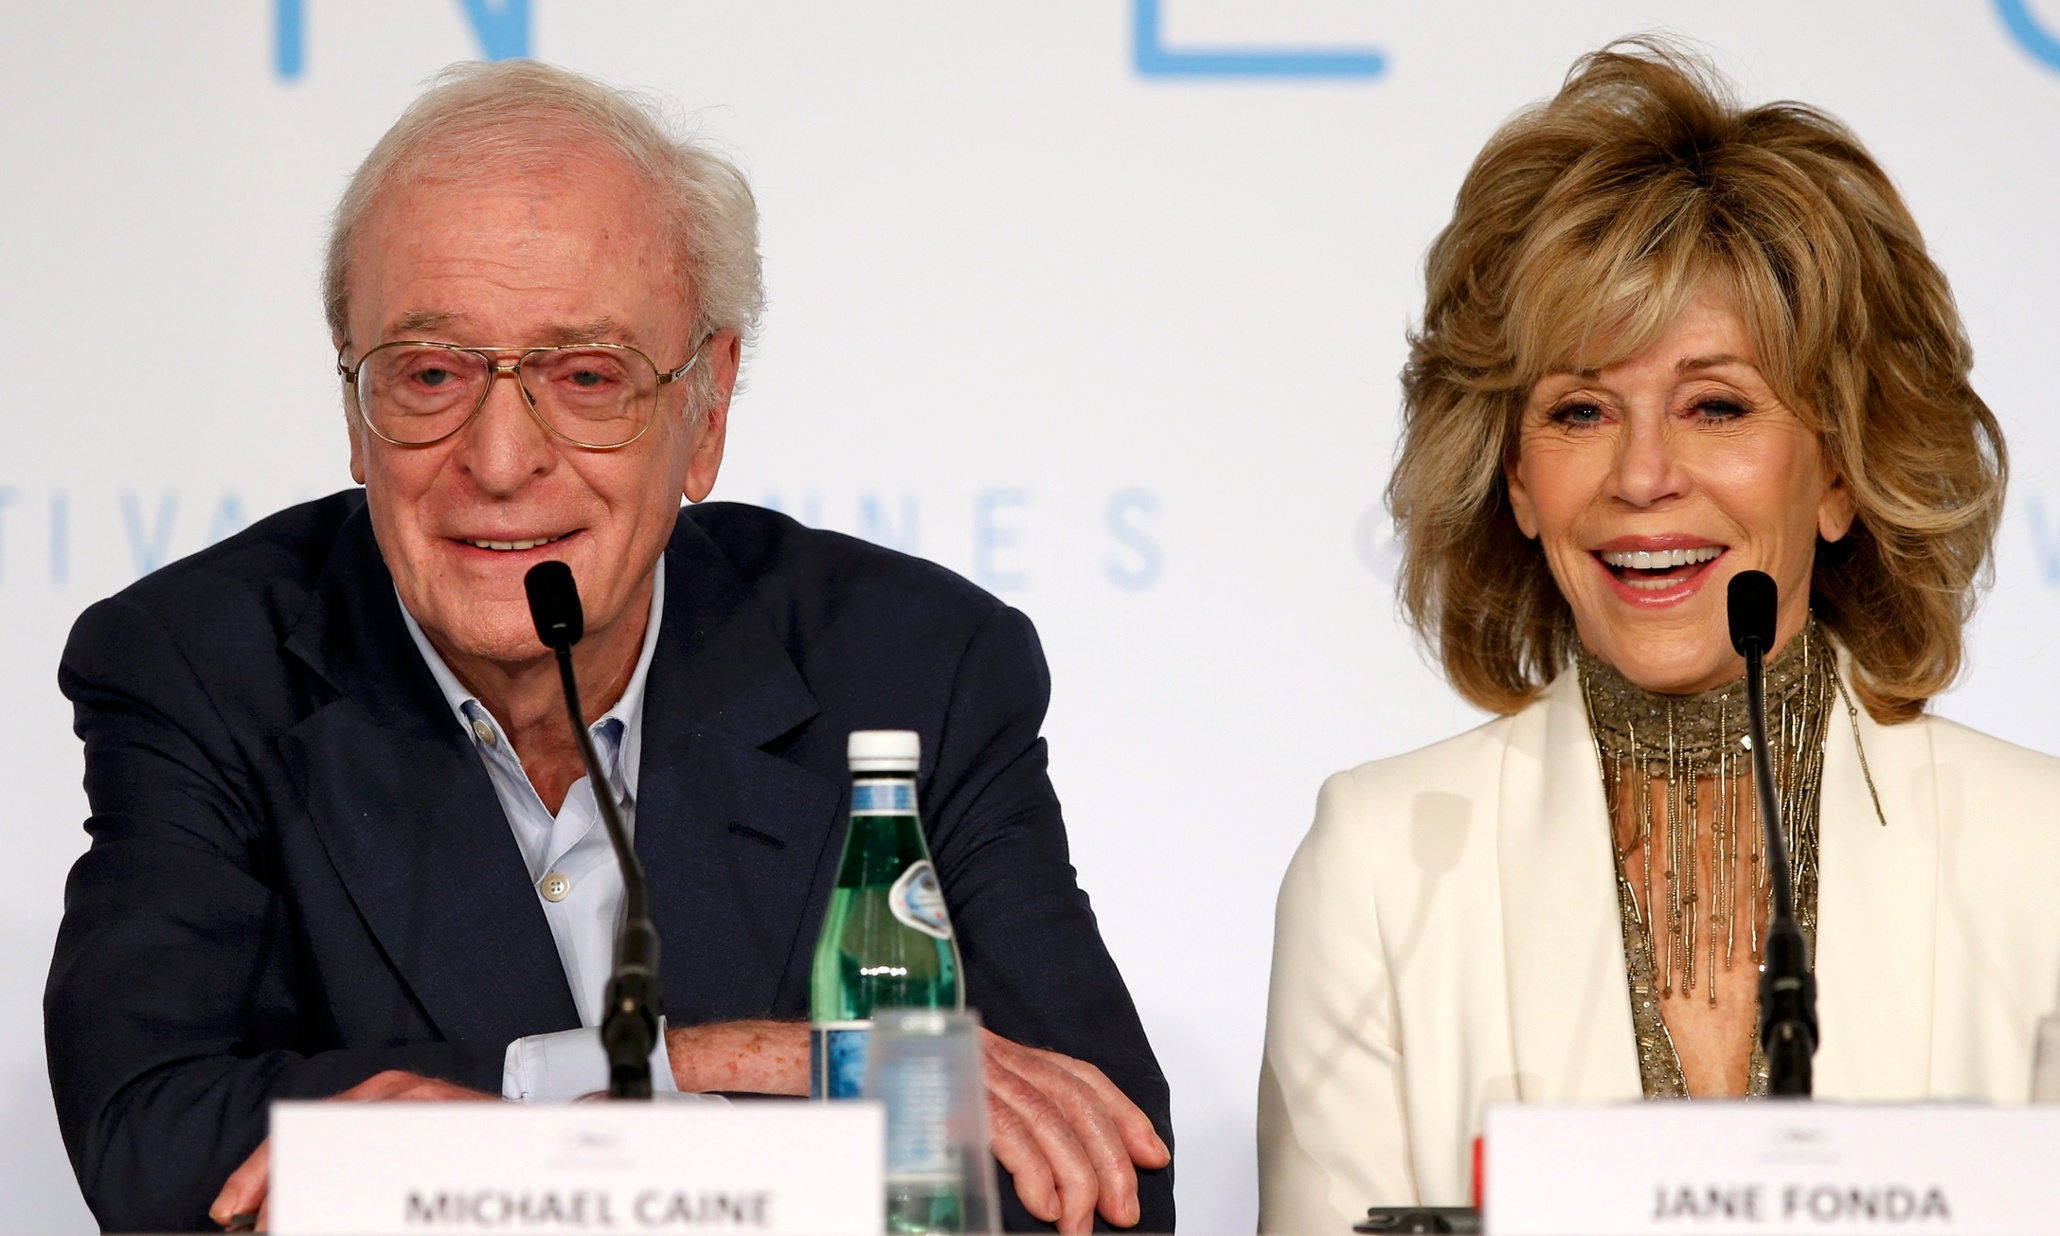 Michael Caine in Cannes: 'Playing the elderly is better than playing the dead'